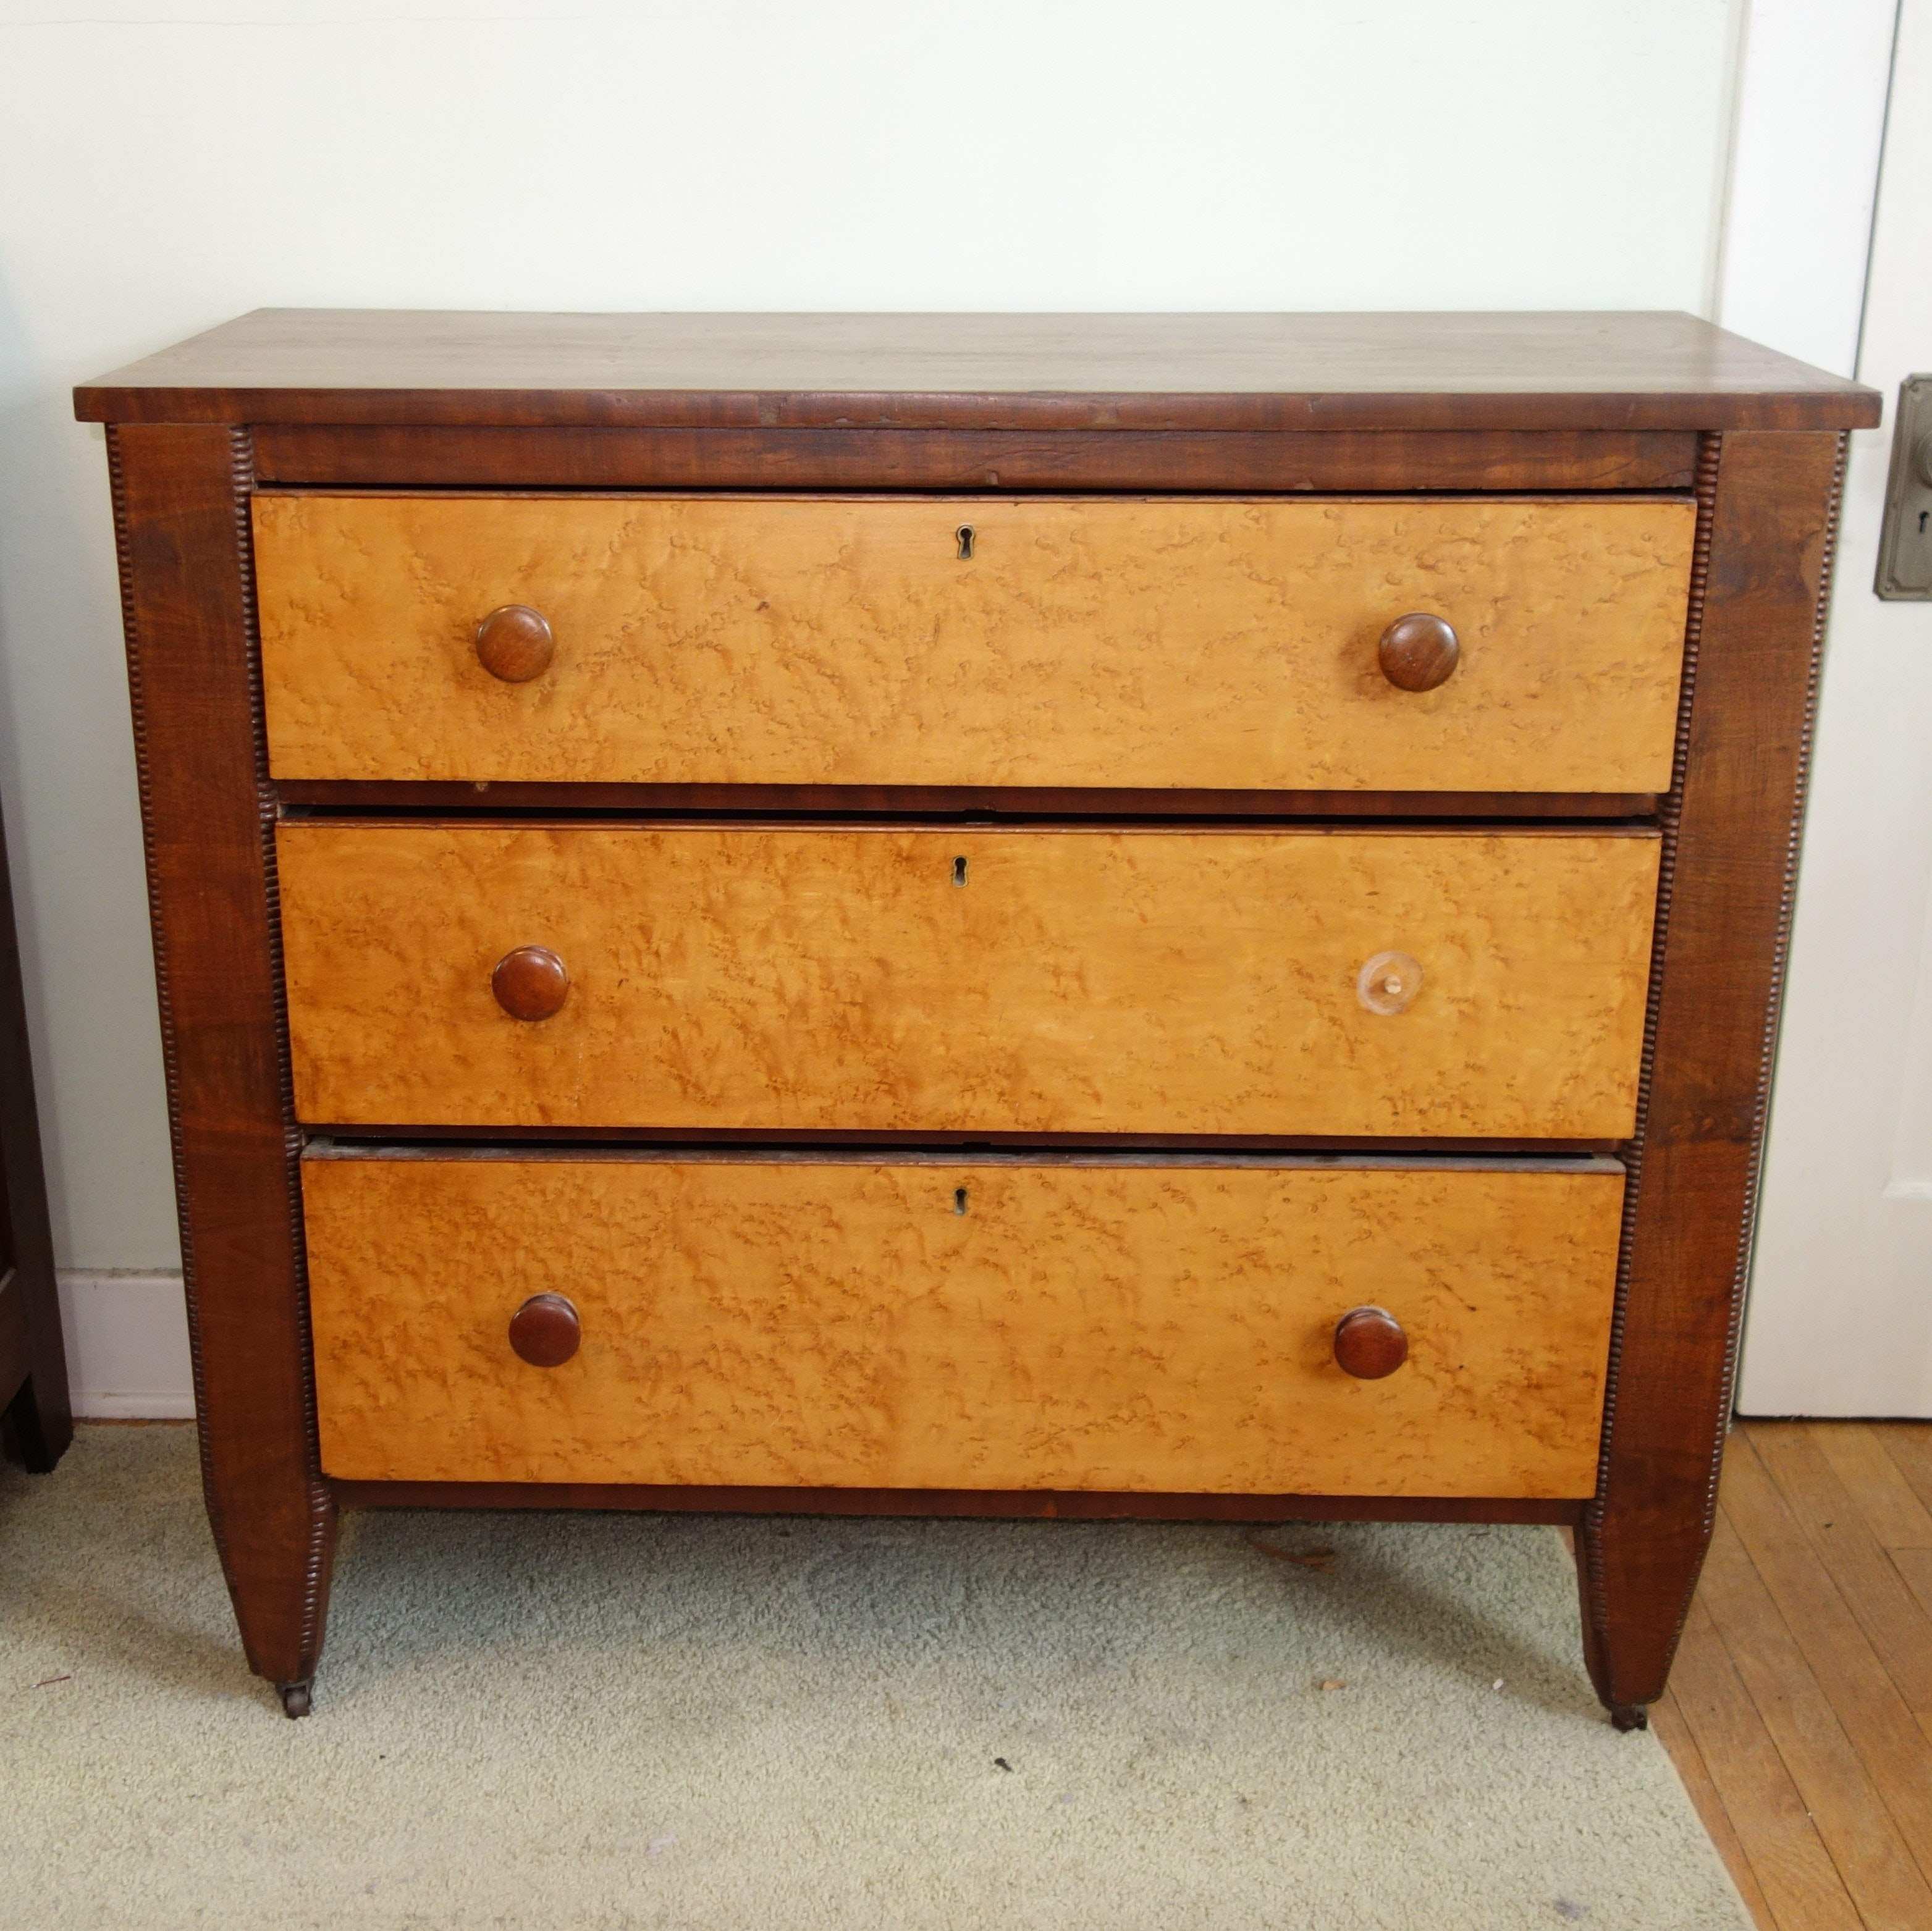 Antique Early American Birdseye Maple Chest of Drawers